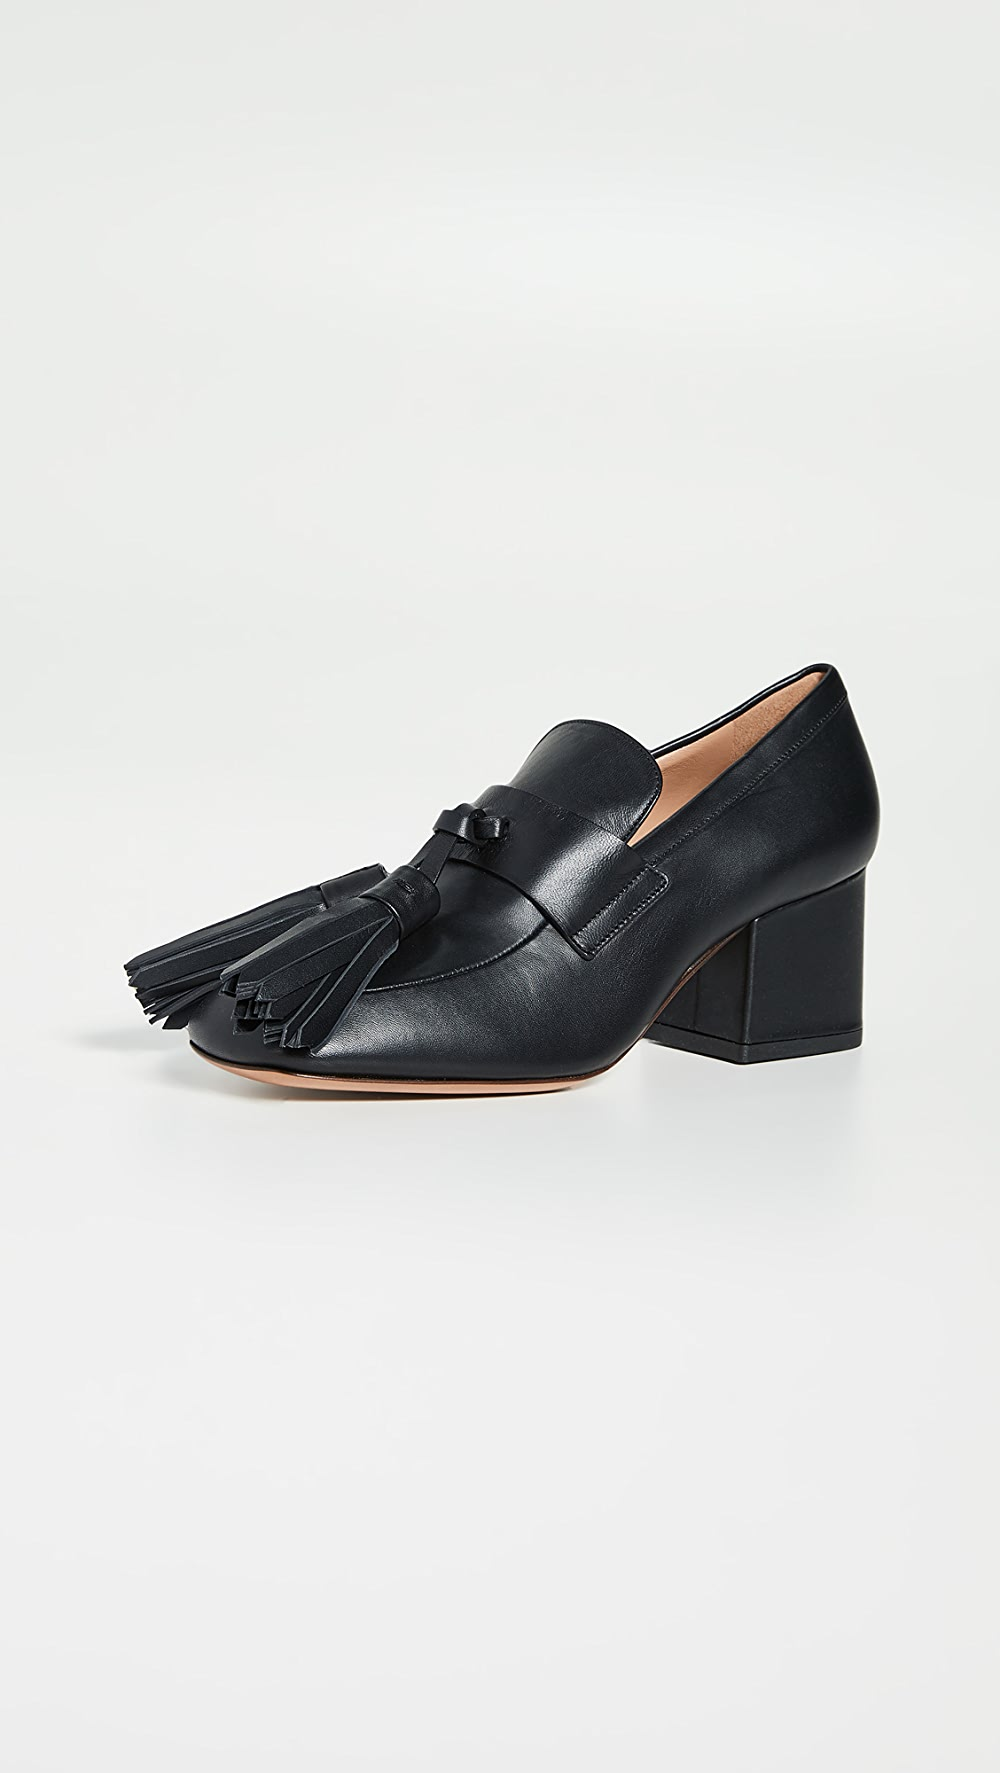 Amiable Marni - Heeled Loafers Suitable For Men, Women, And Children